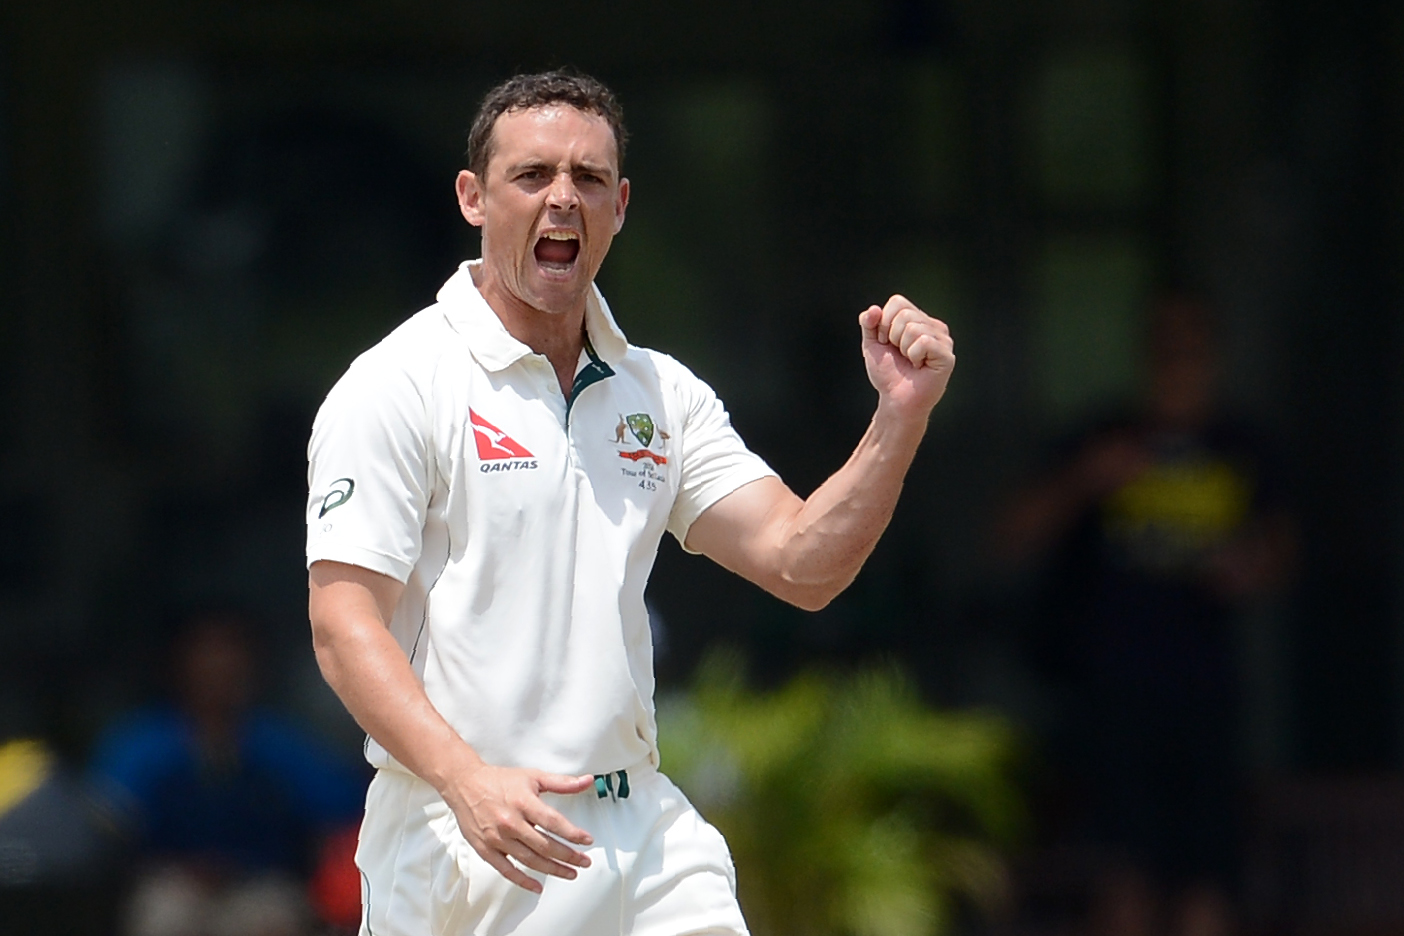 Anderson Back On Top Of The World